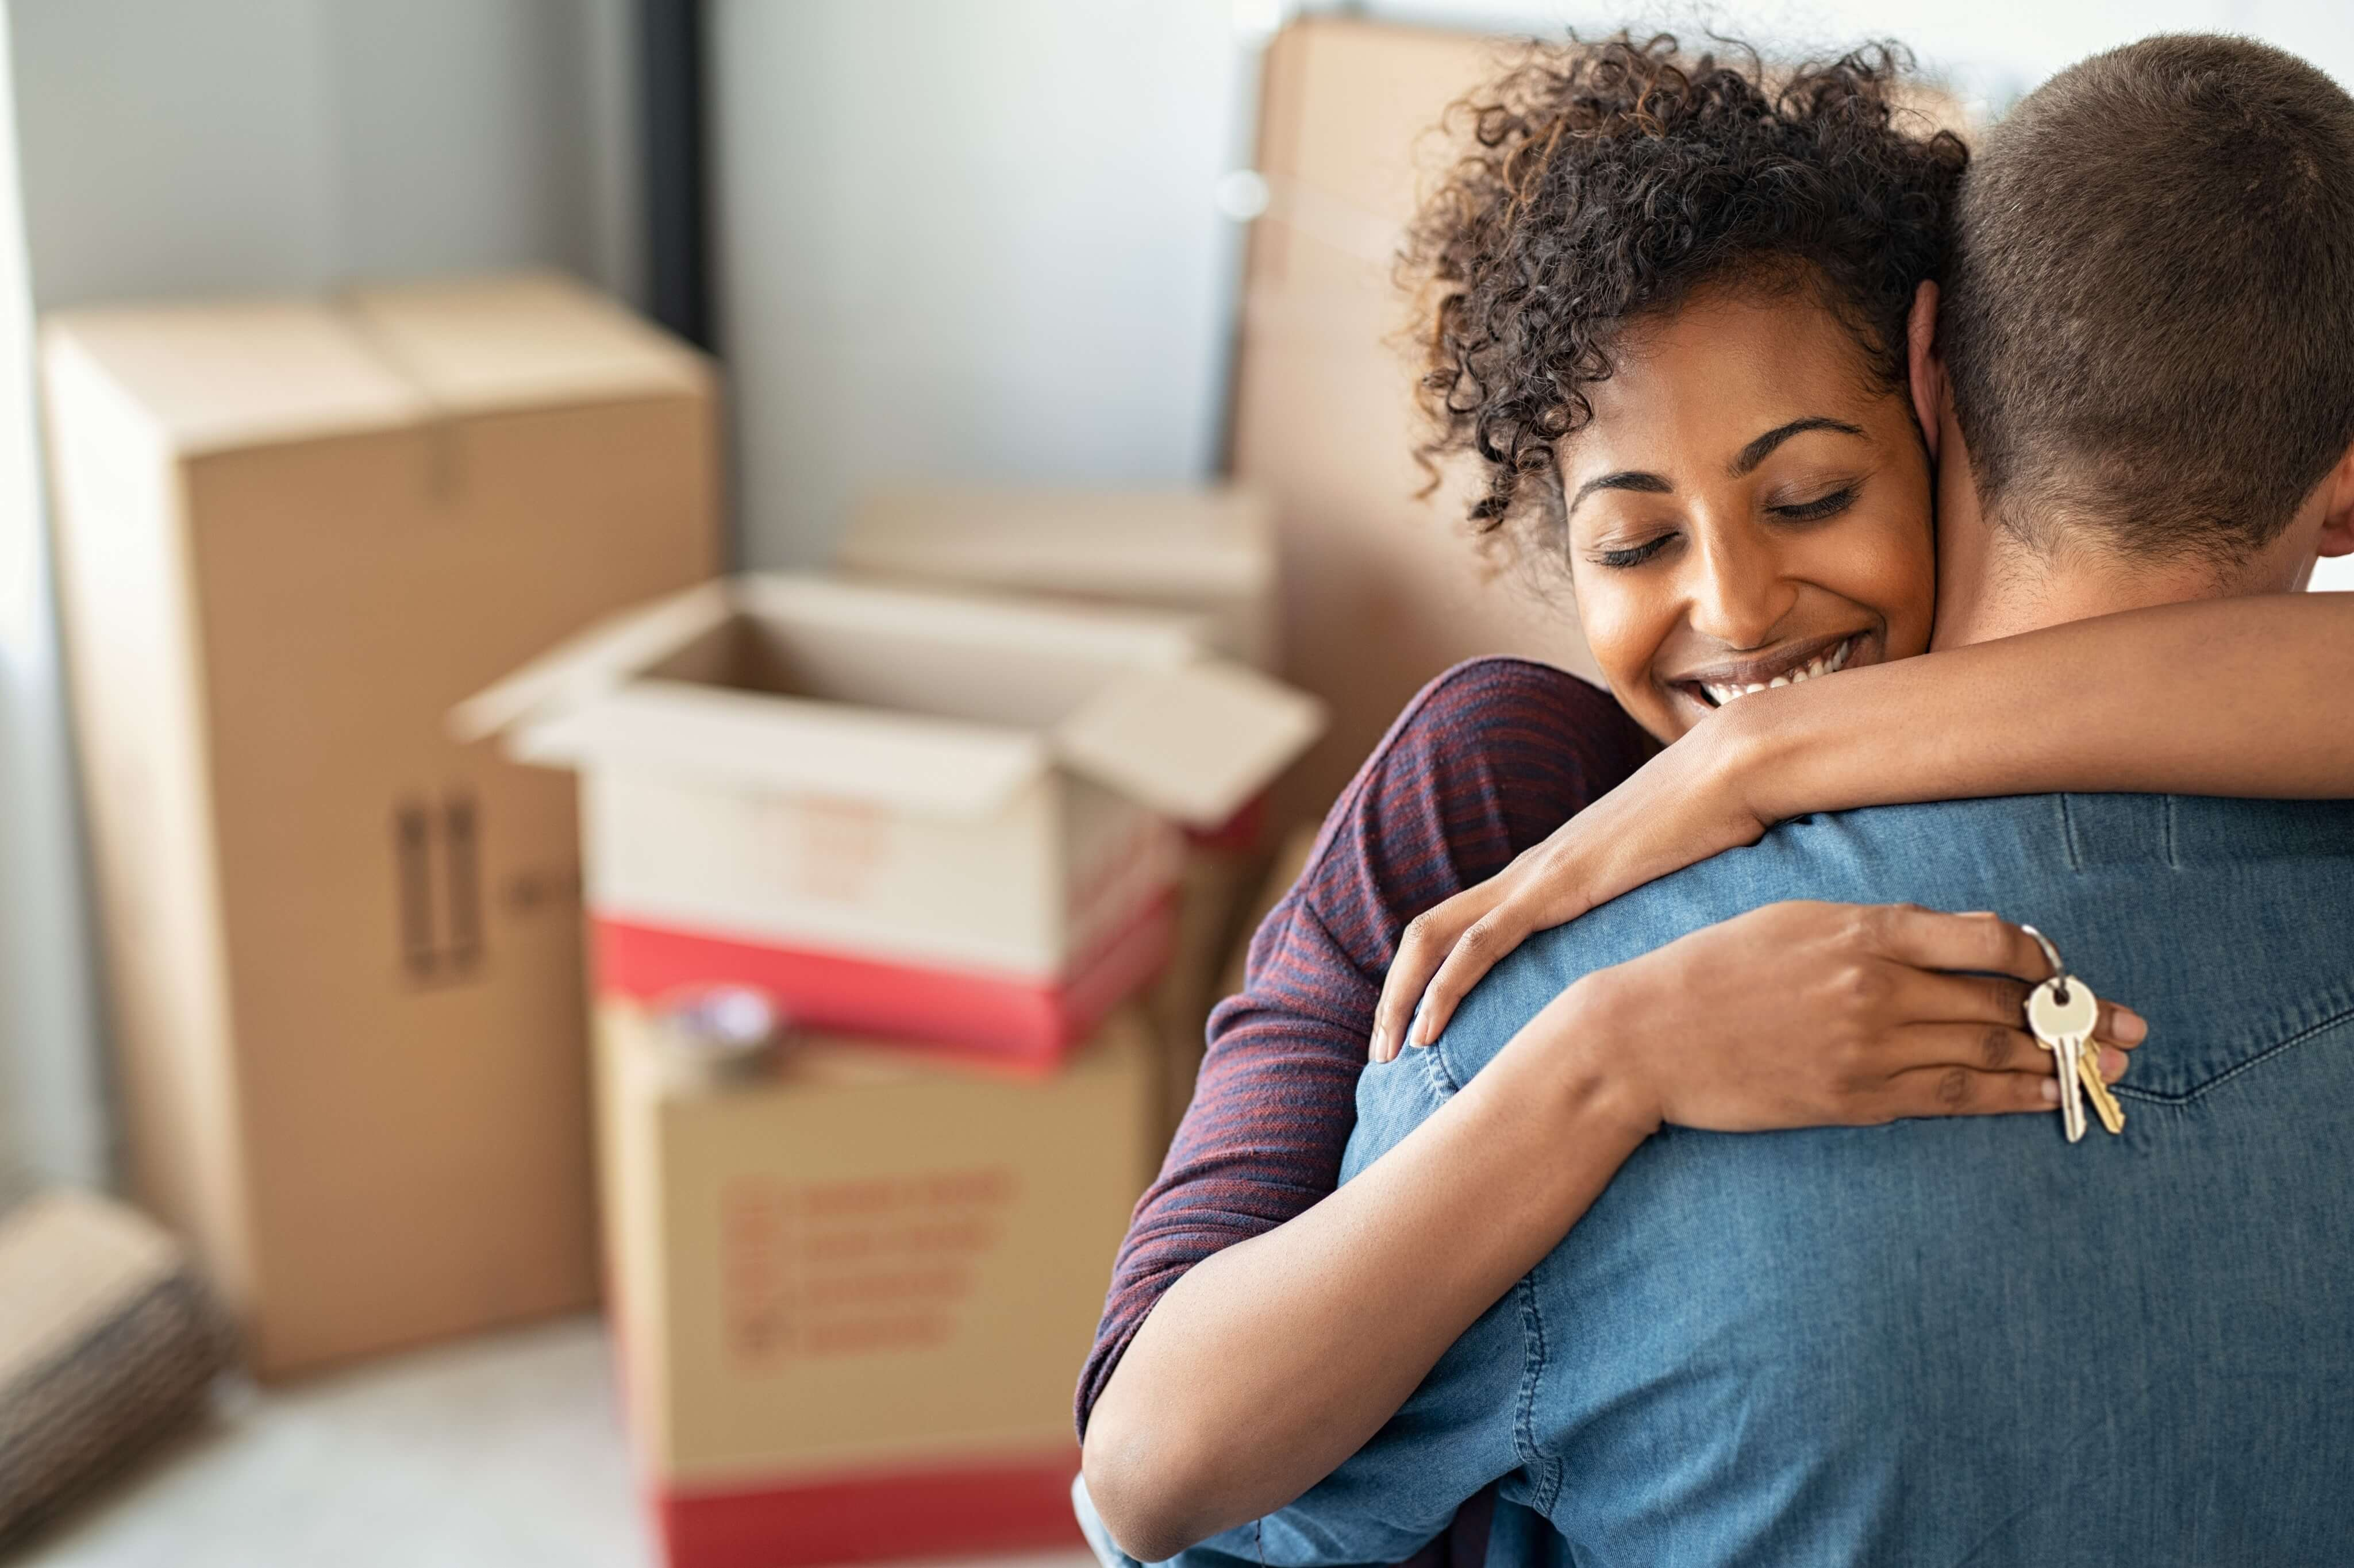 Process for Buying Your First Home: What You Need to Know